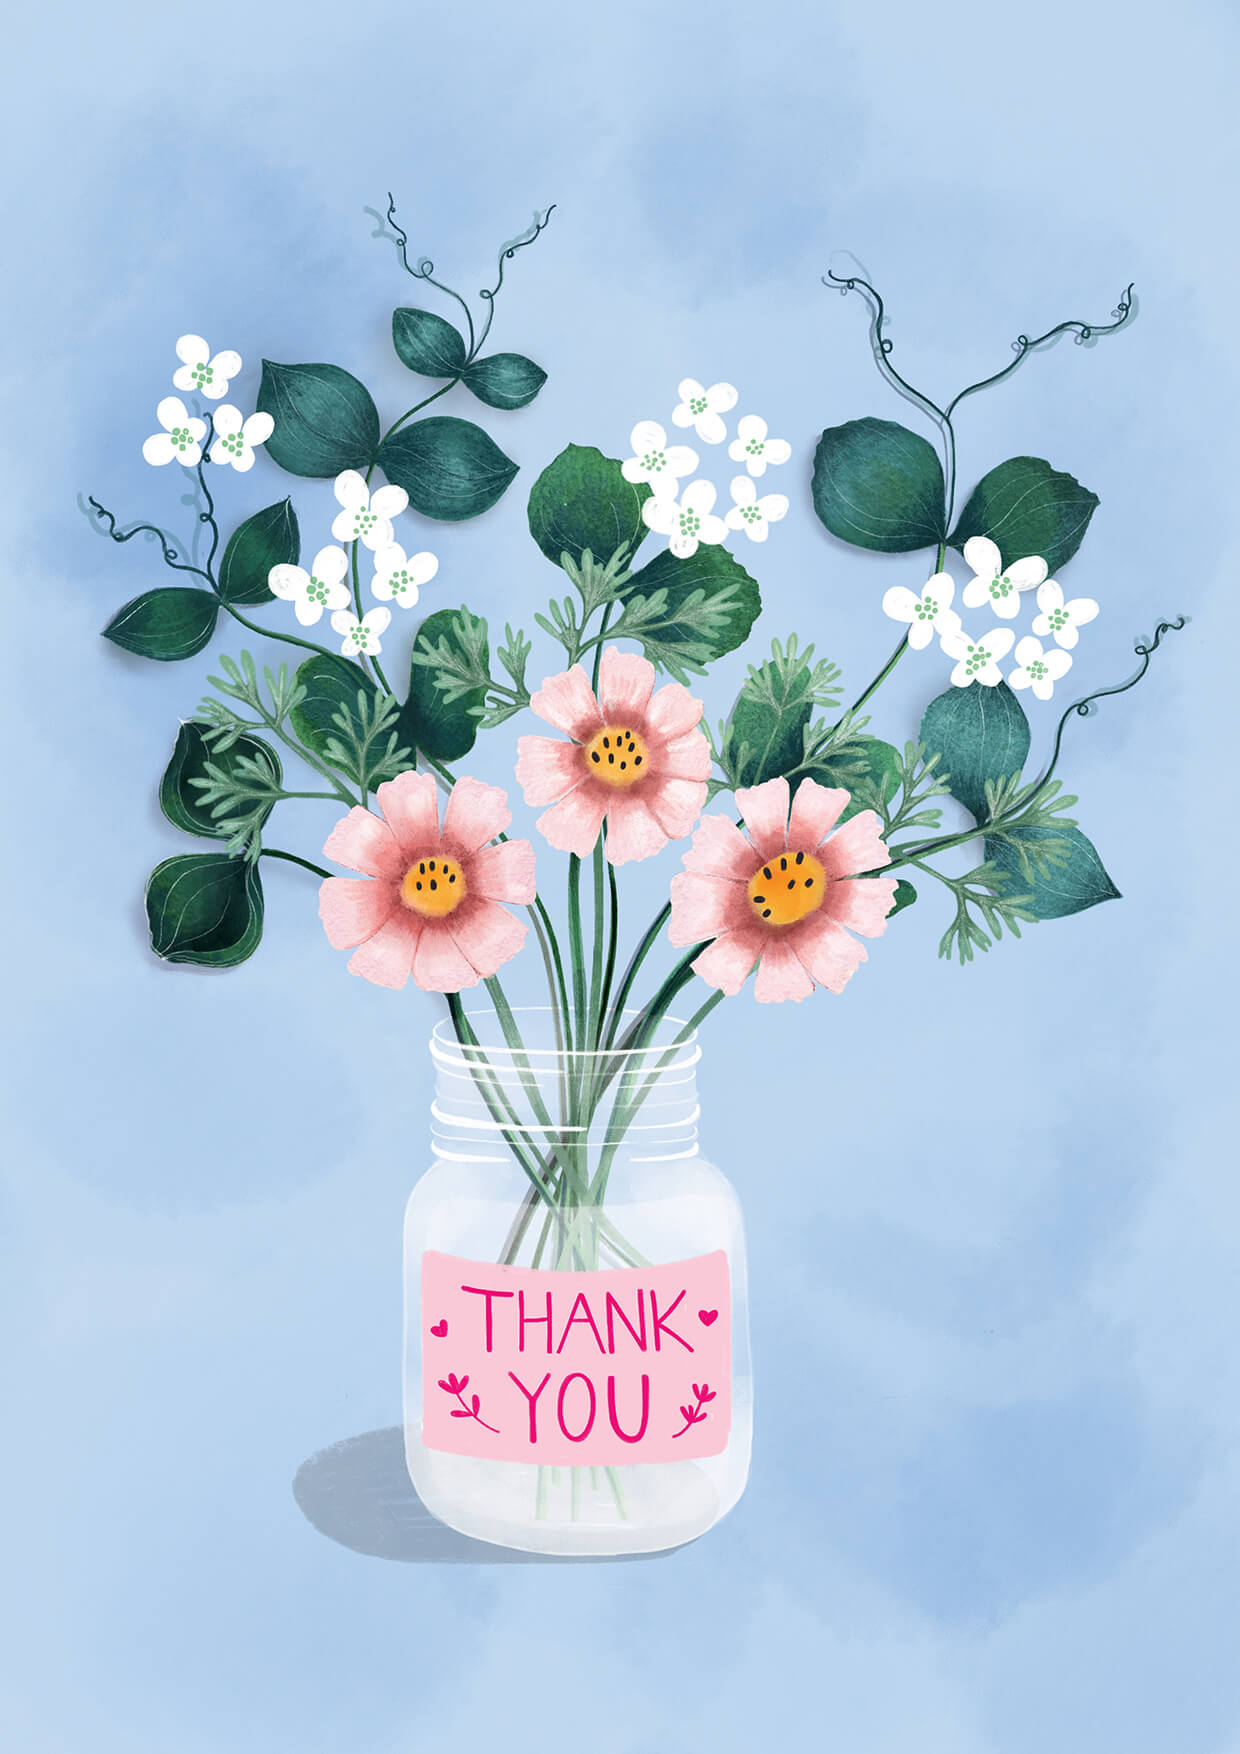 Thank you Card, Erin Duncan Creative